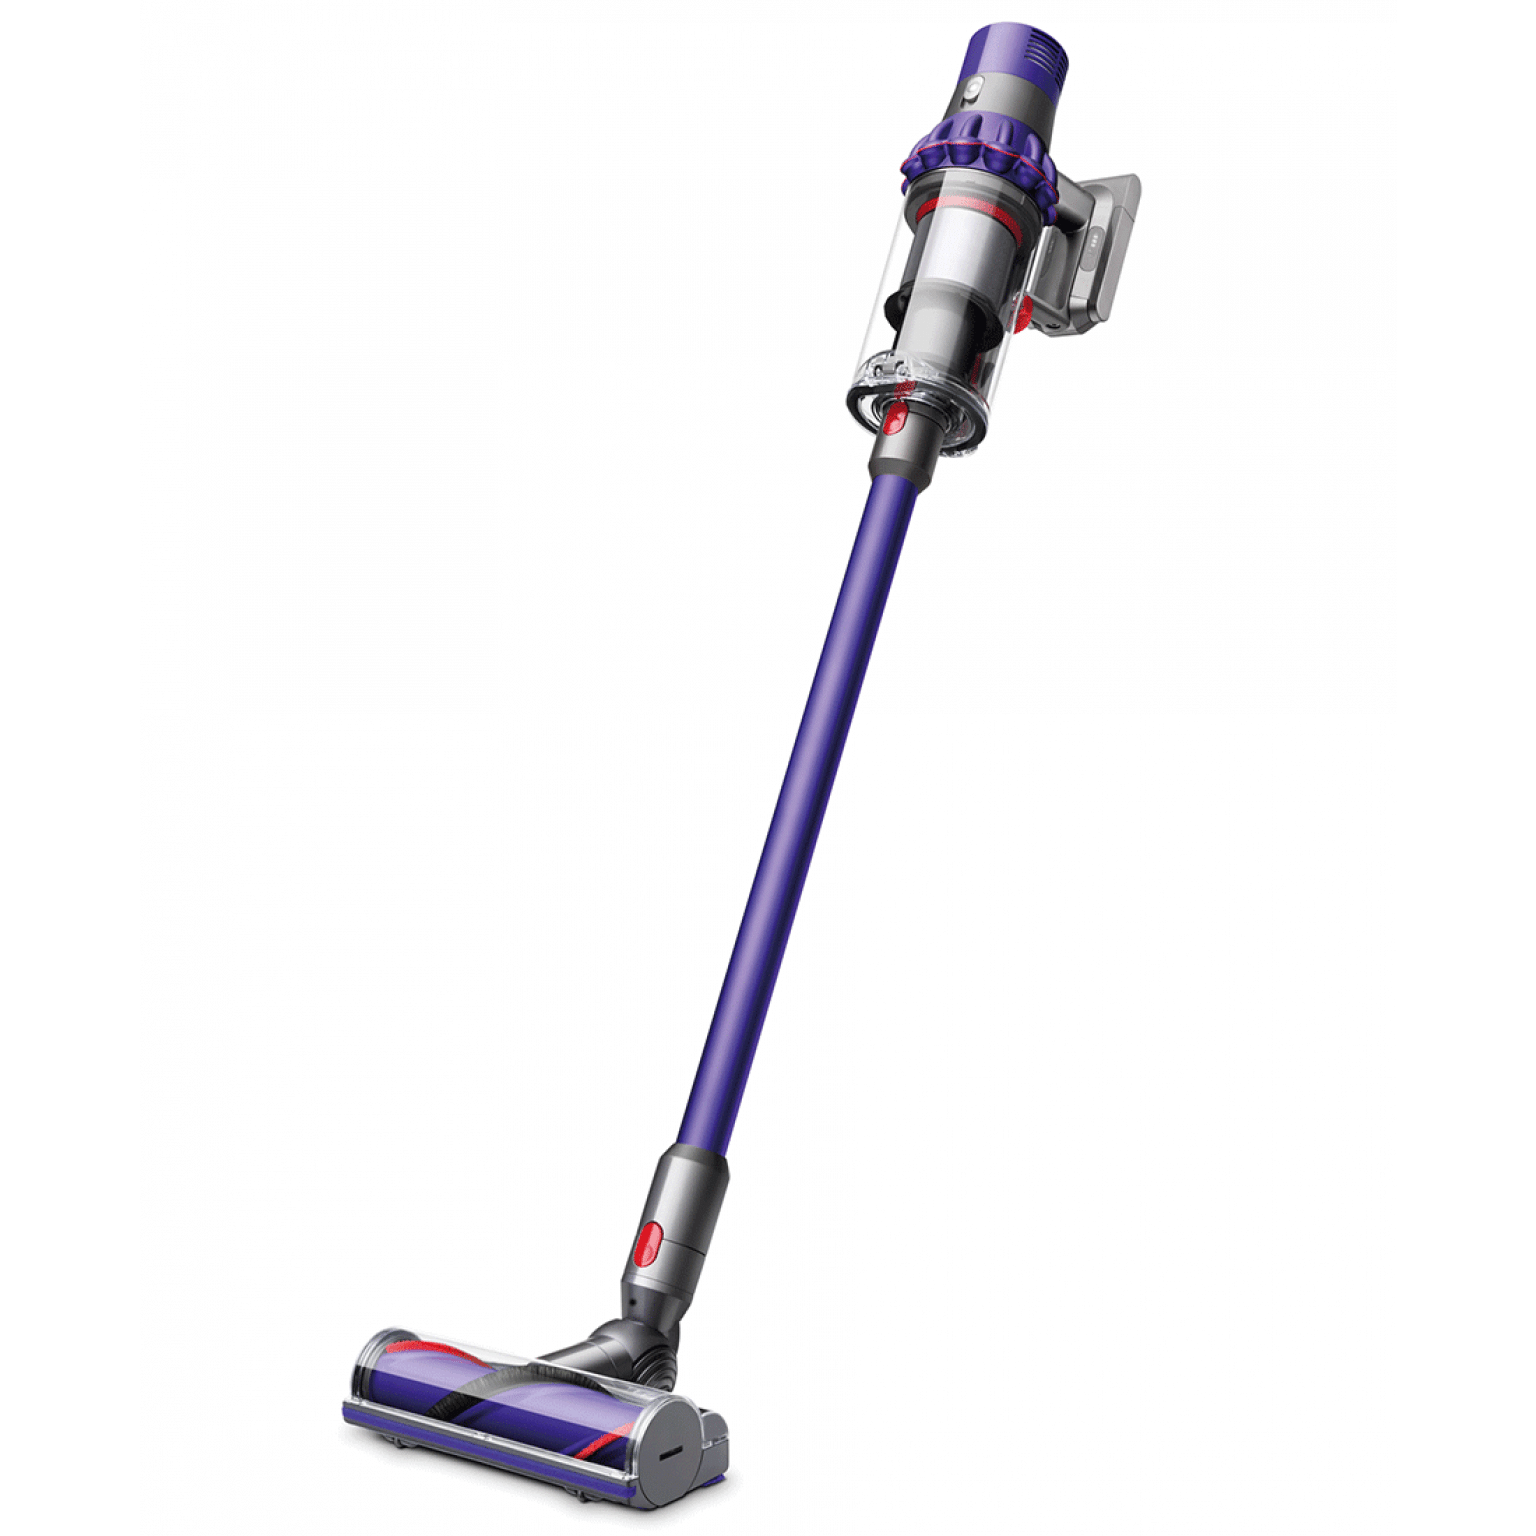 Dyson Cyclone V10 Animal Cordless Vacuum Cleaner   226364-01